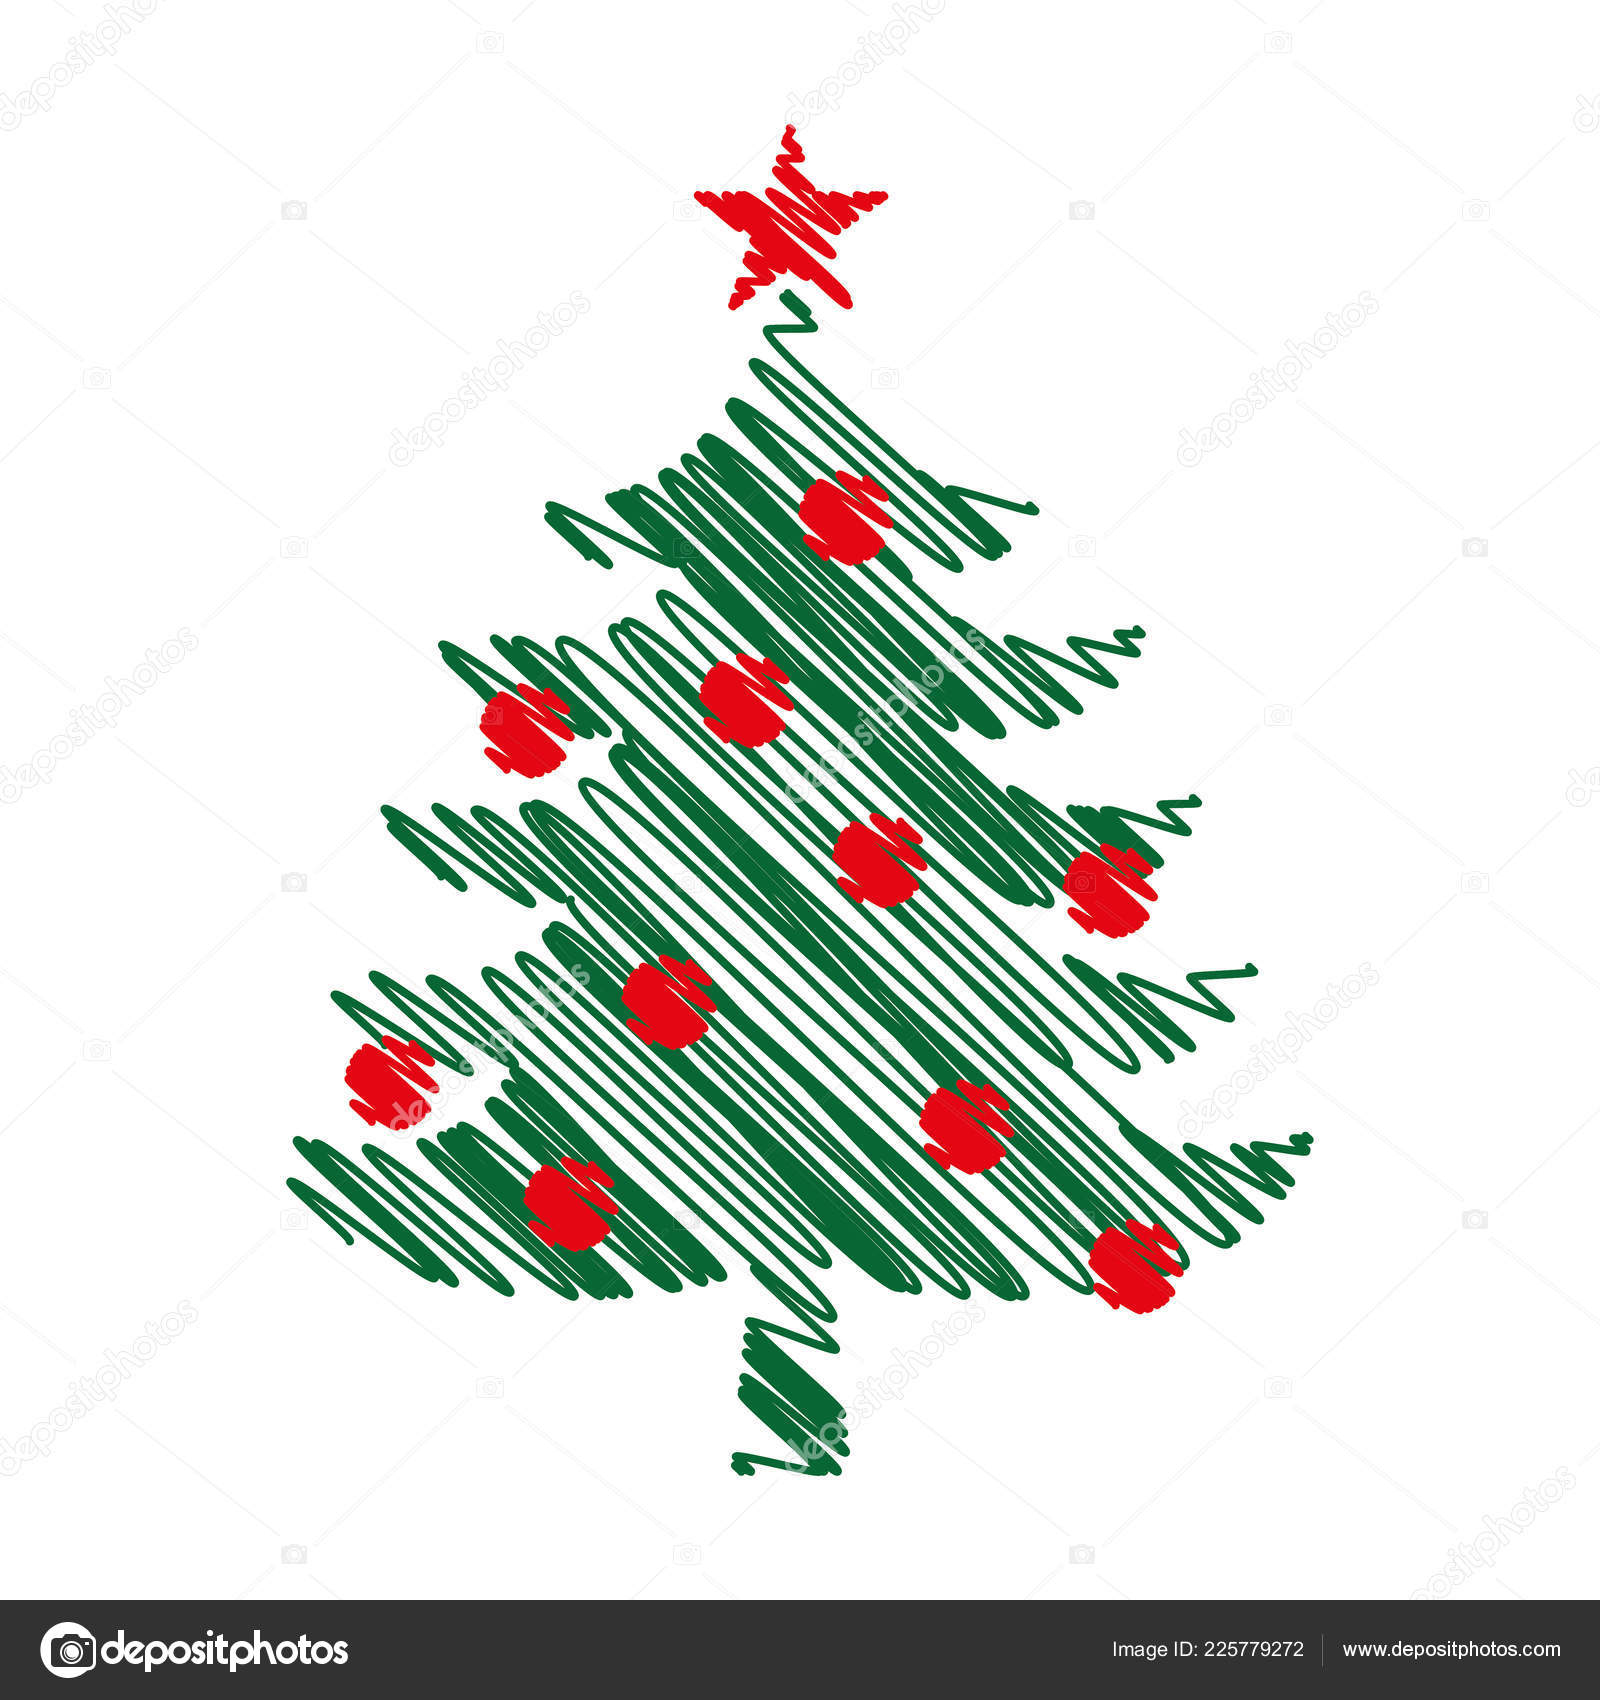 christmas tree graphic art design new year fir tree vector stock vector c zannaholstova 225779272 https depositphotos com 225779272 stock illustration christmas tree graphic art design html